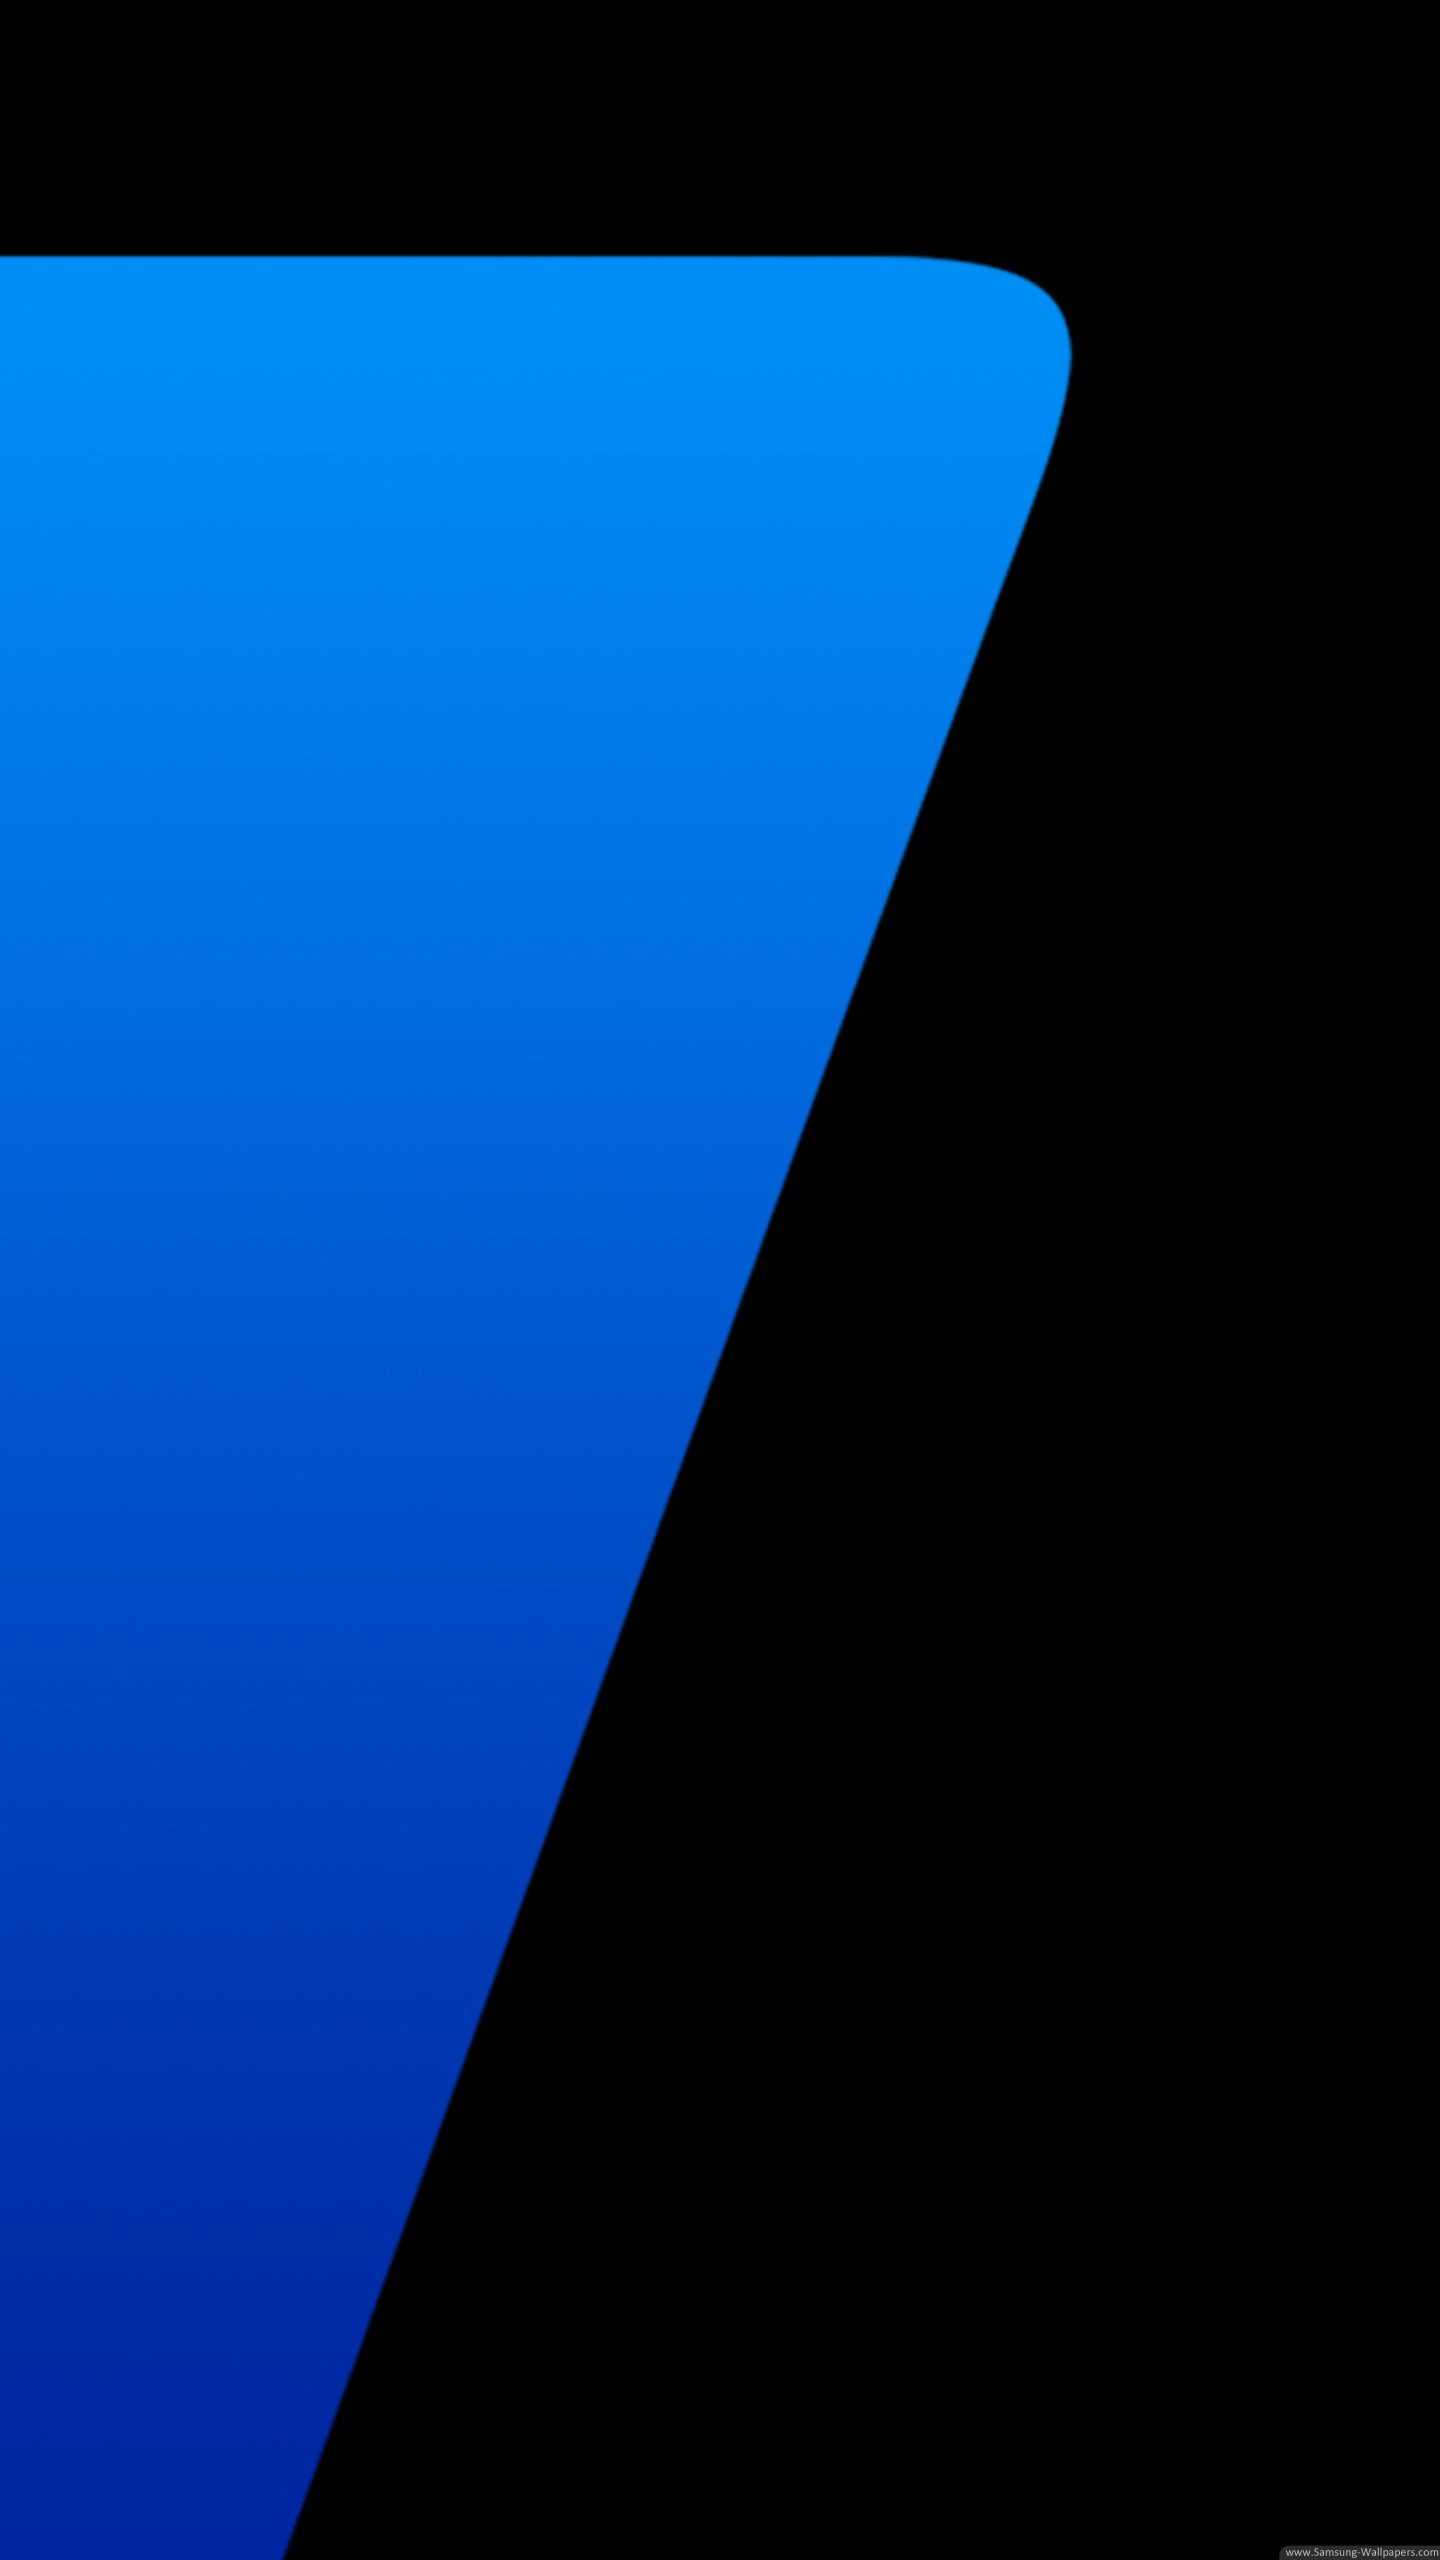 Galaxy S7 Edge Wallpapers 65 images 1440x2560